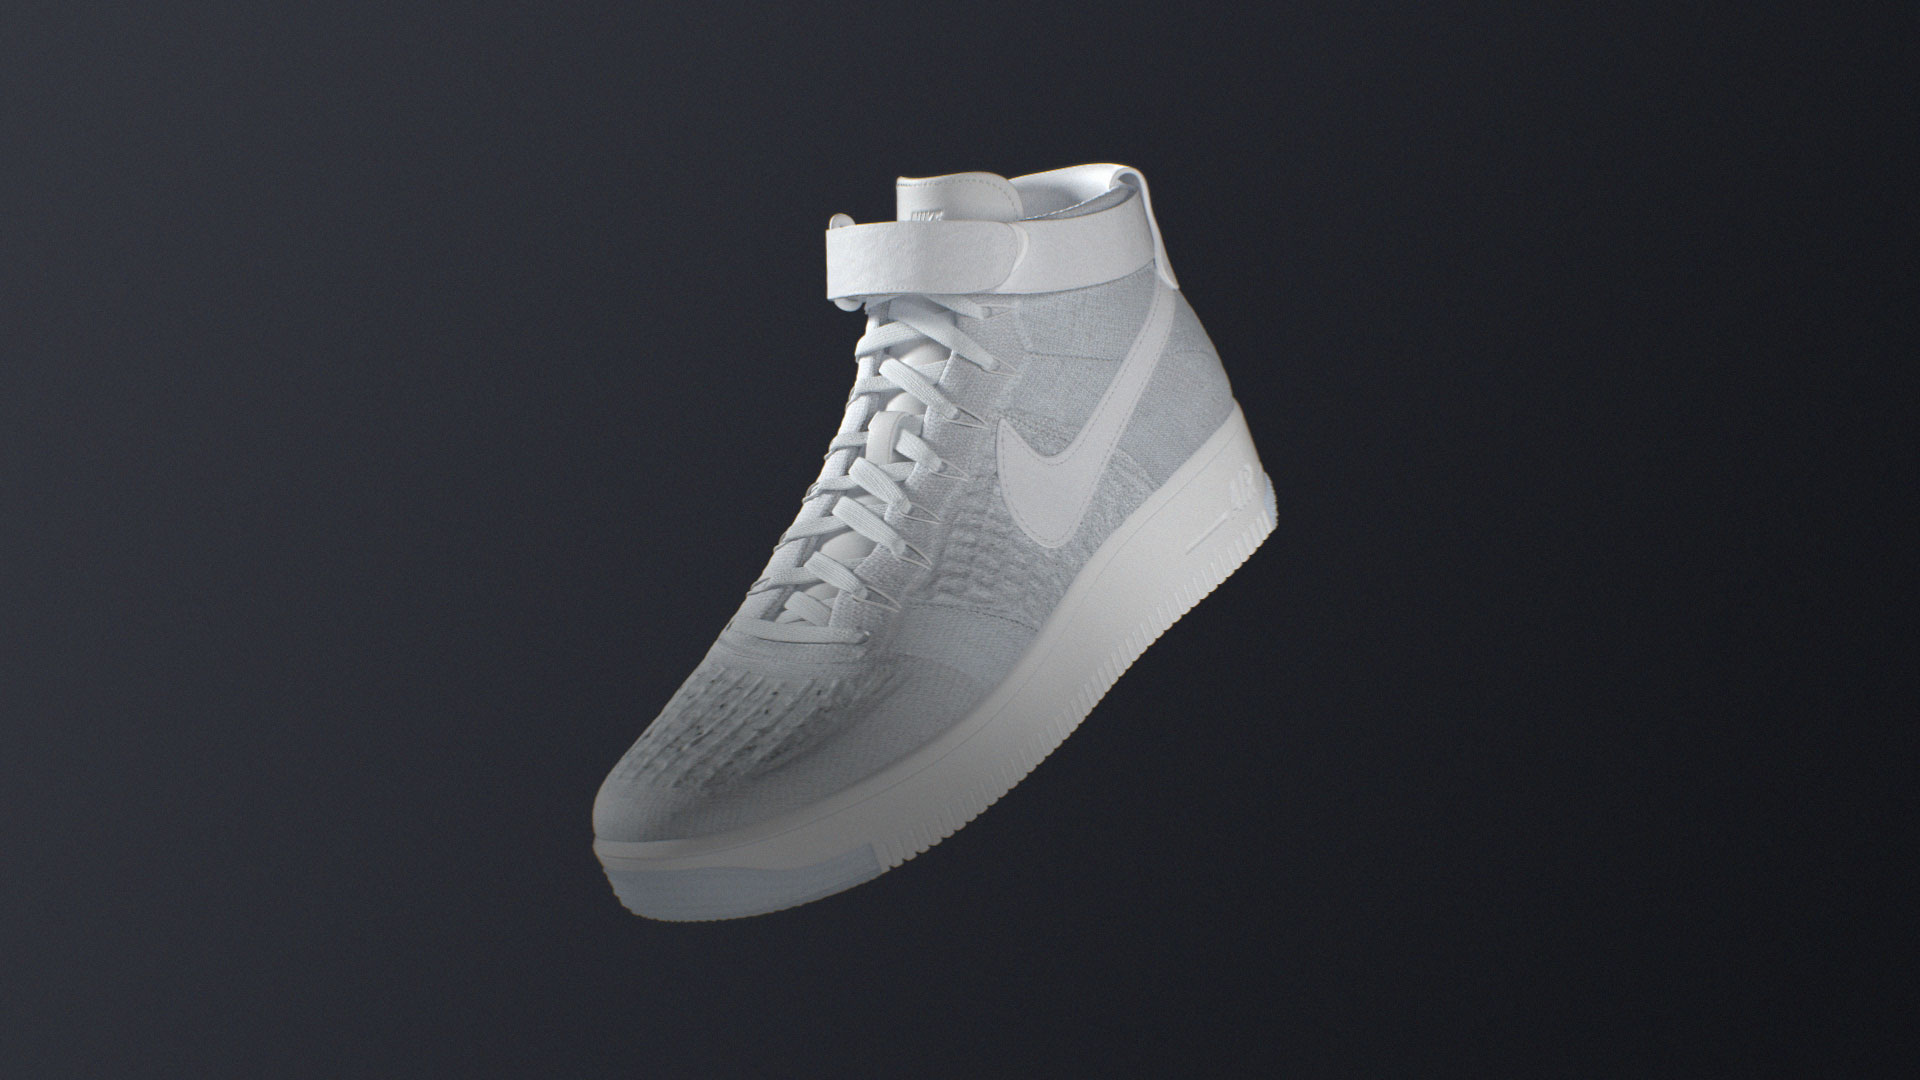 Nike Flyknit sport 3d cgi Air force 1 shoe